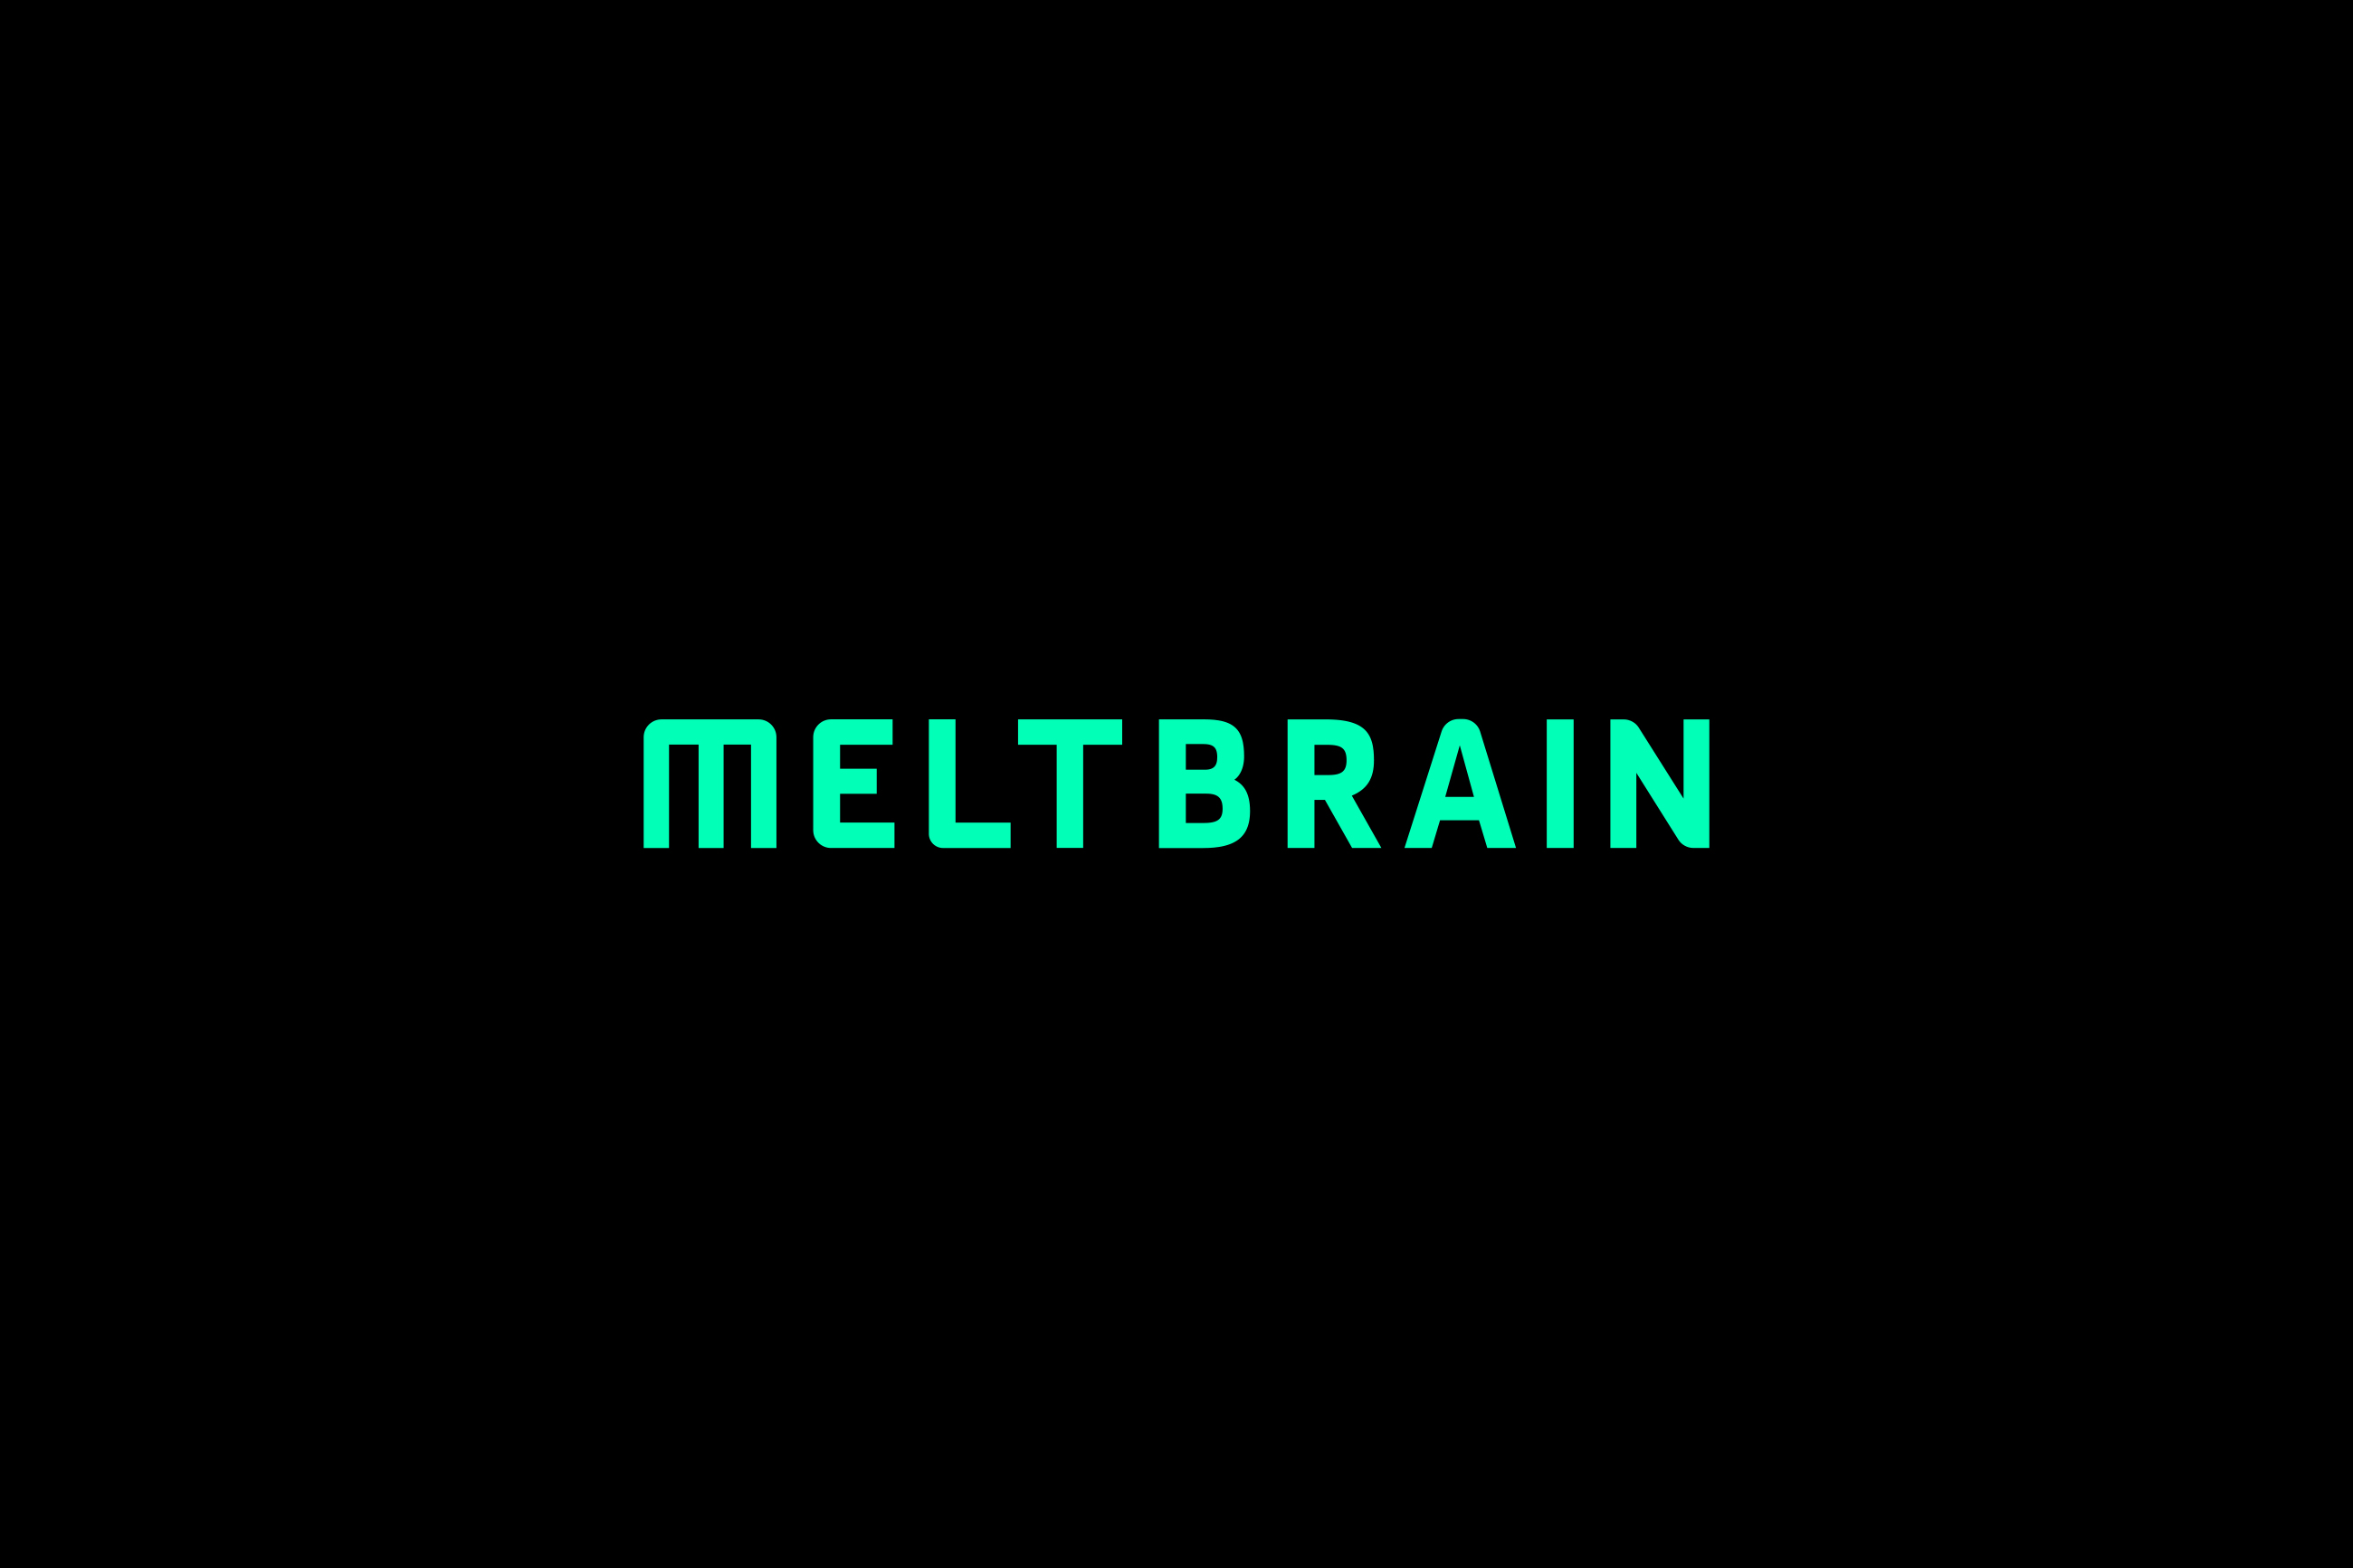 Melt-Brain_Wordmark_Studio-St-Louis